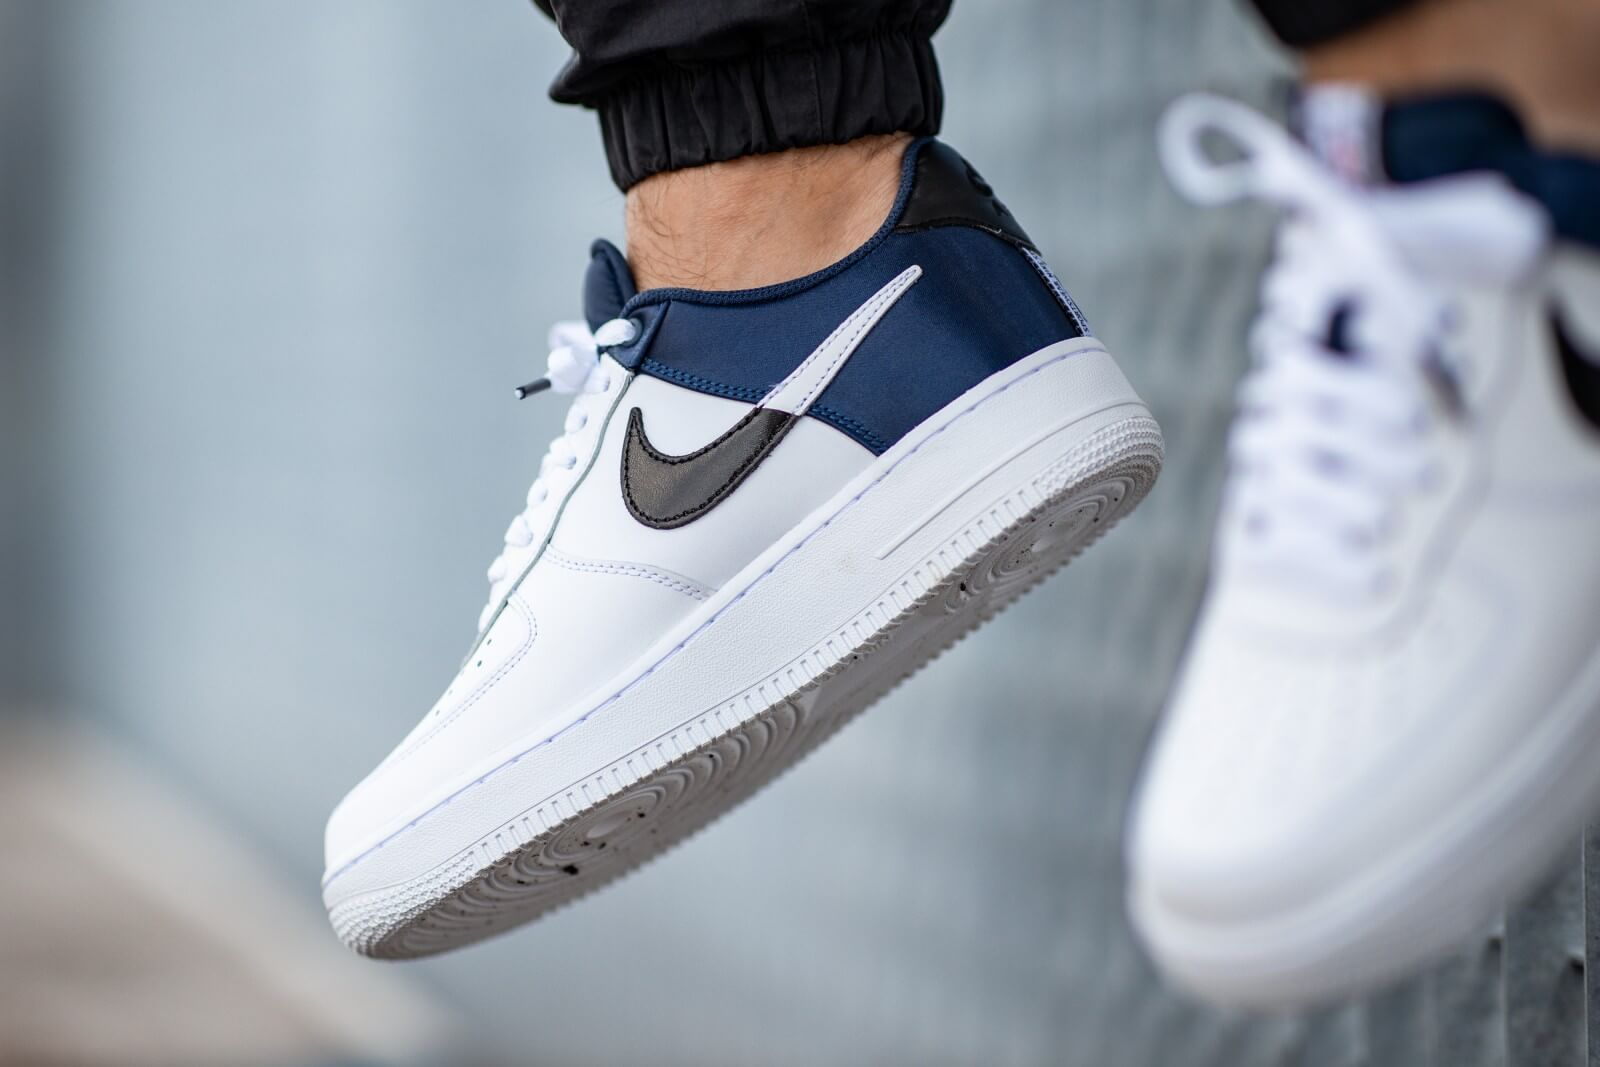 Nike Air Force 1 '07 LV8 Midnight Navy